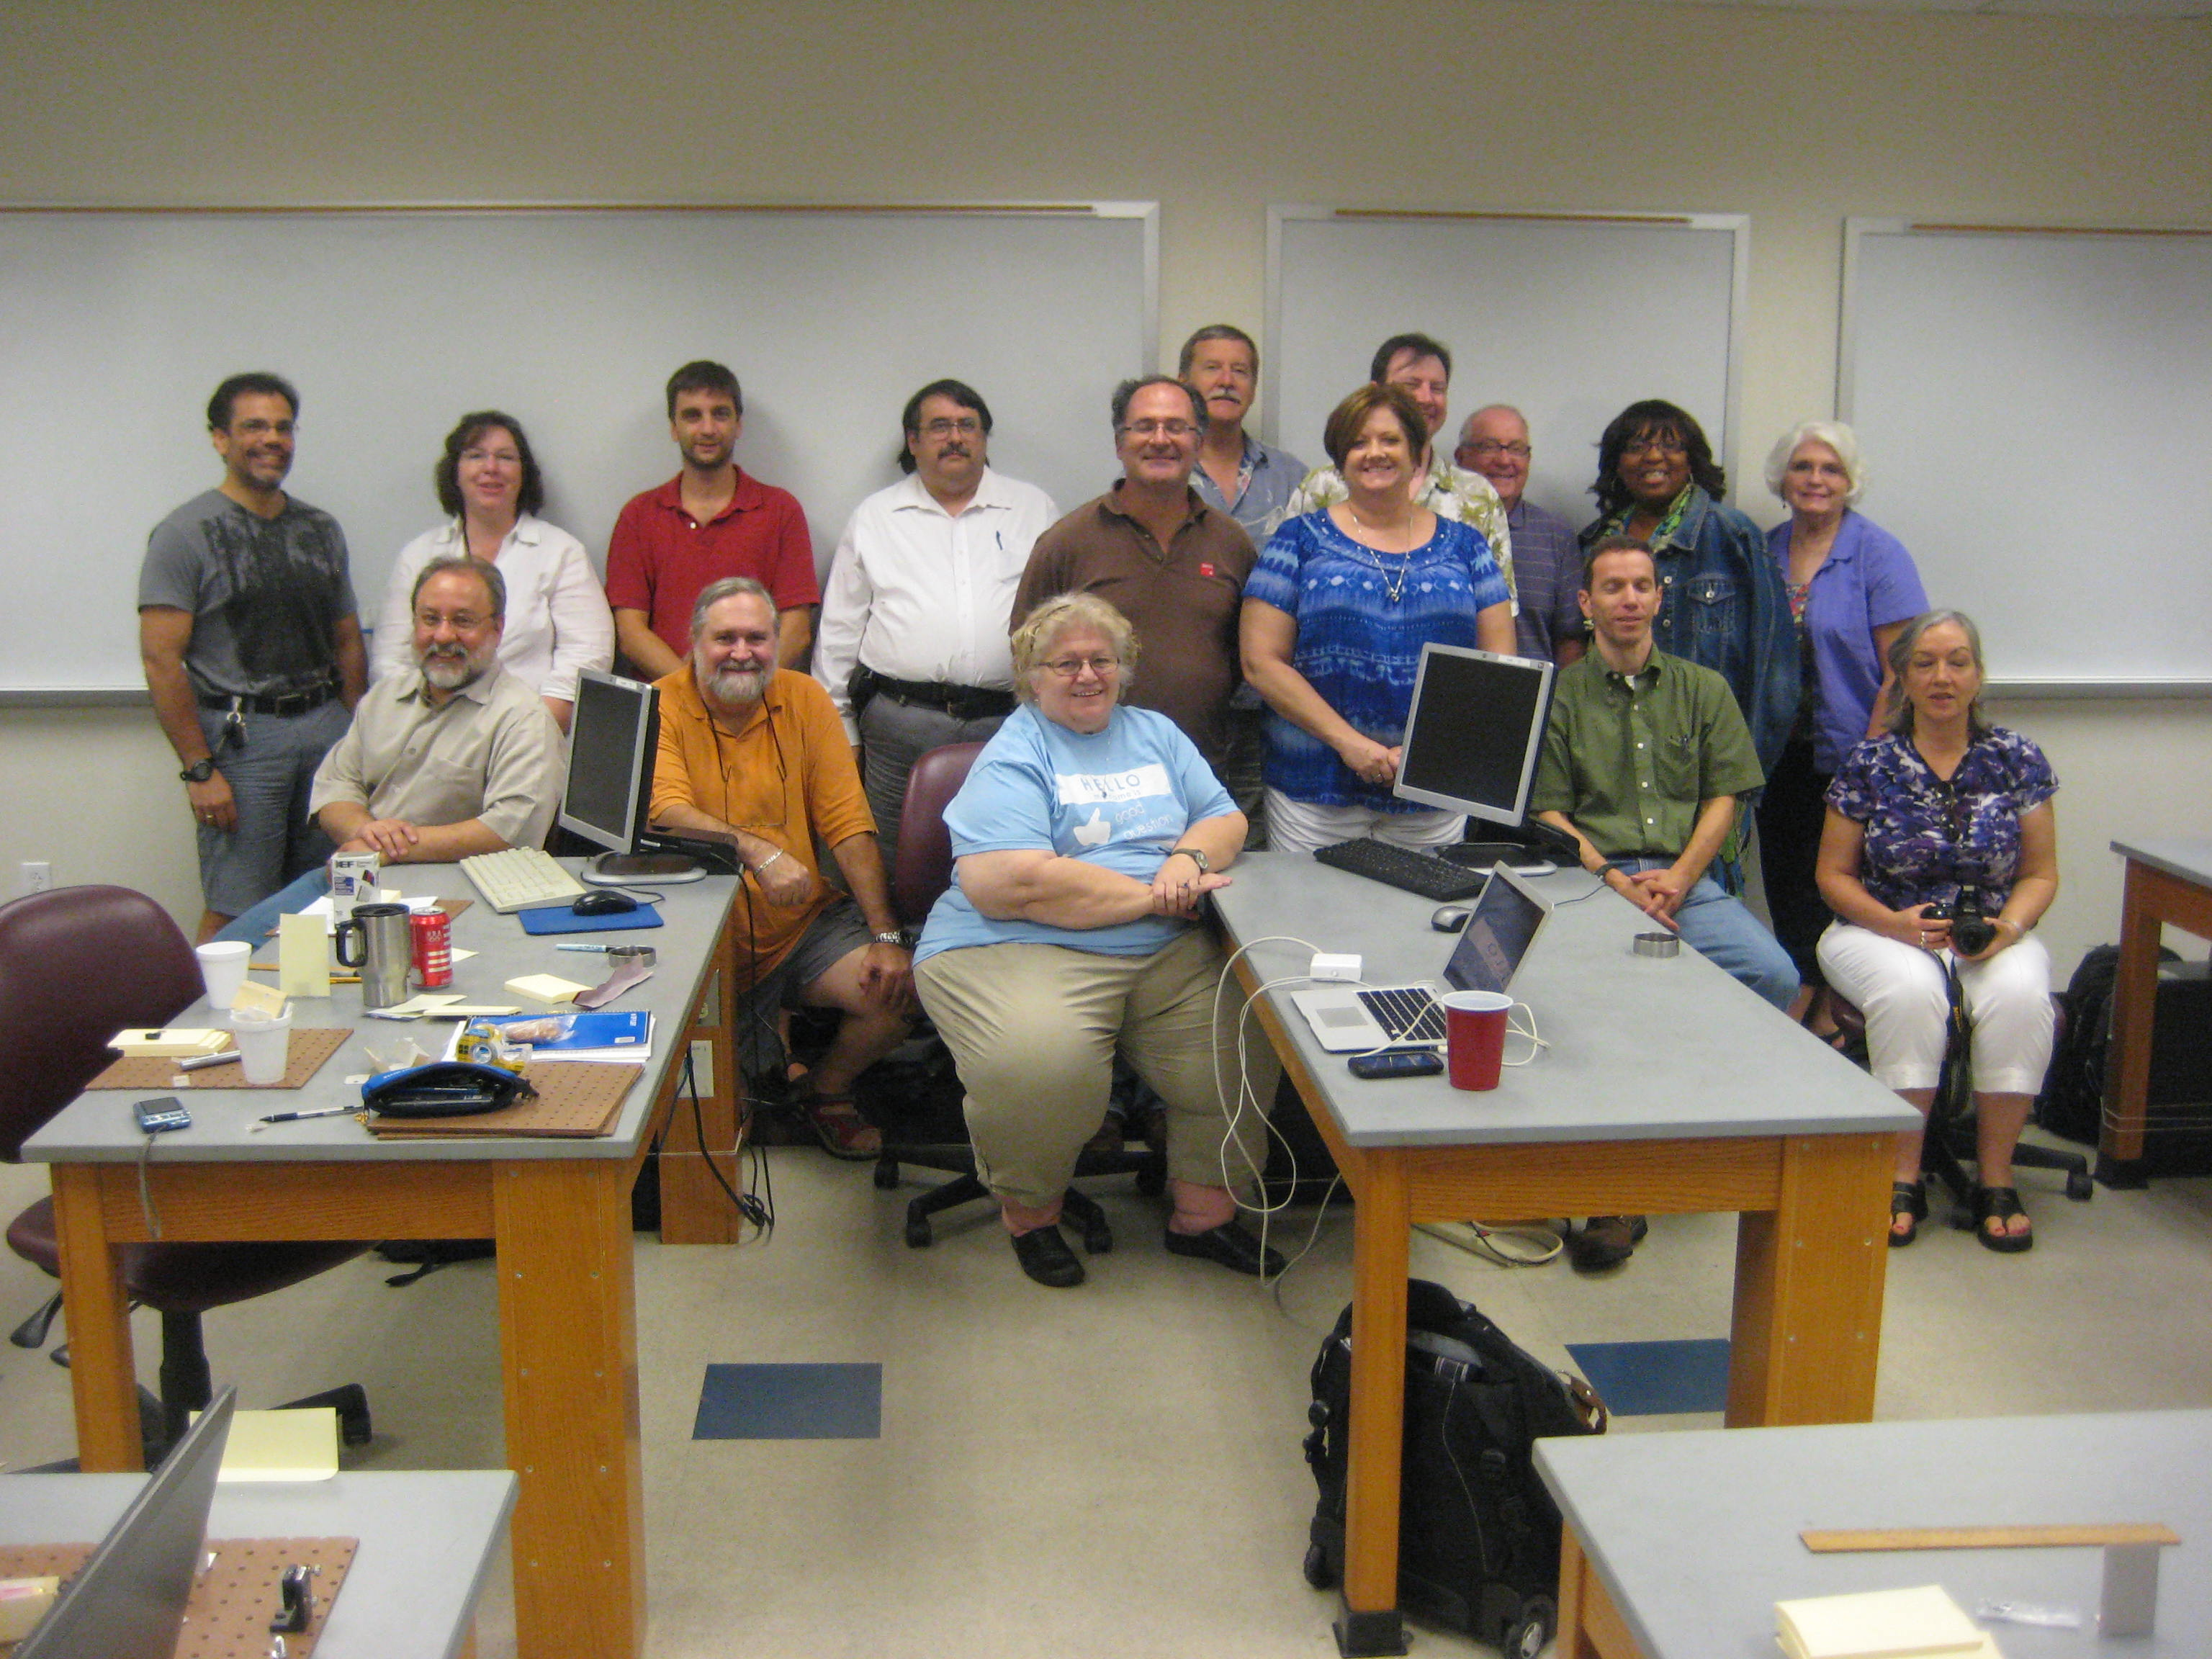 Particle Physics Group in classroom